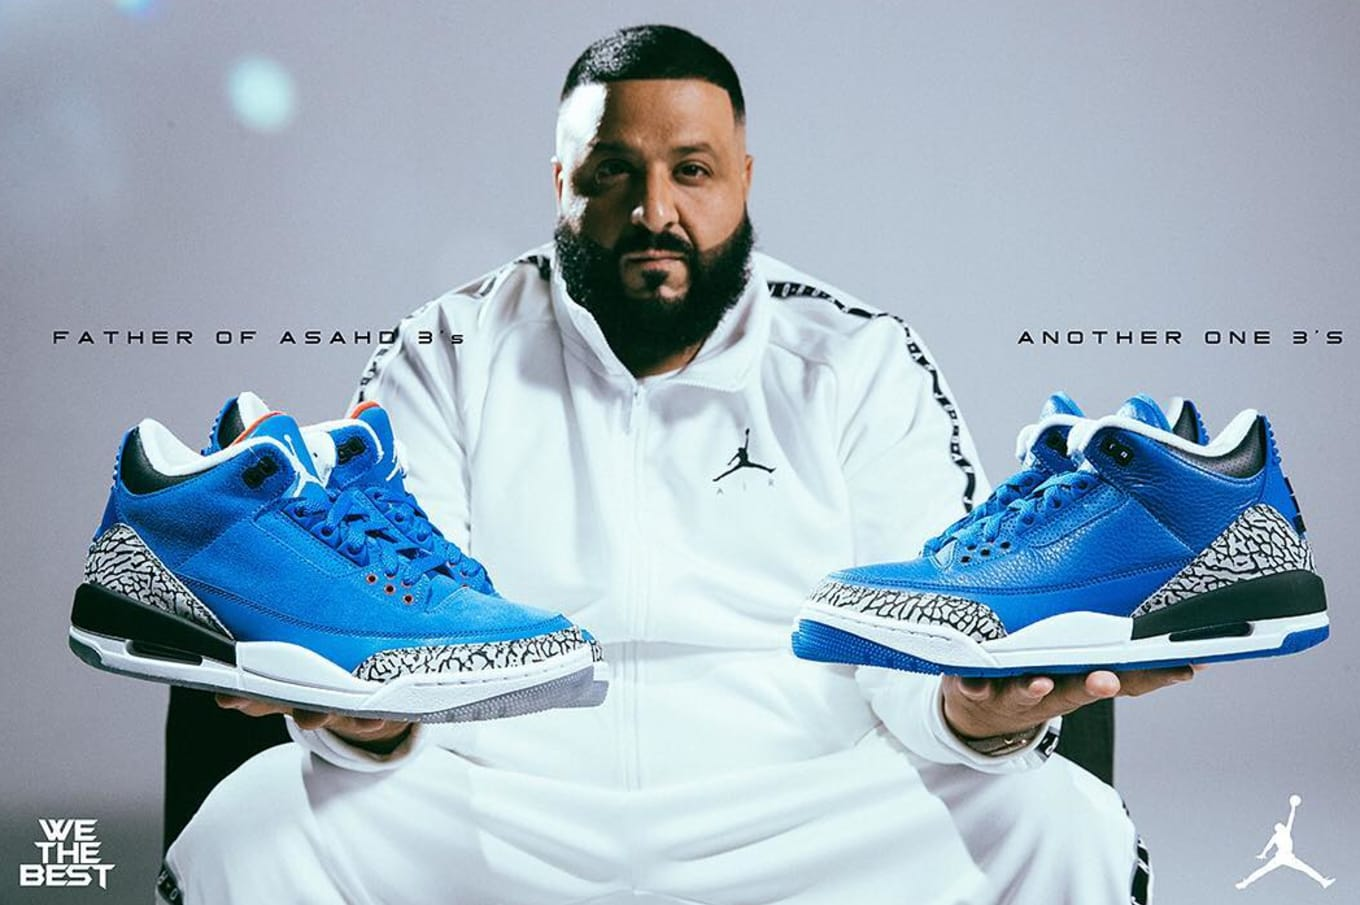 a32722b412d74d DJ Khaled x Air Jordan 3  Father of Asahd  and  Another One  Contest ...